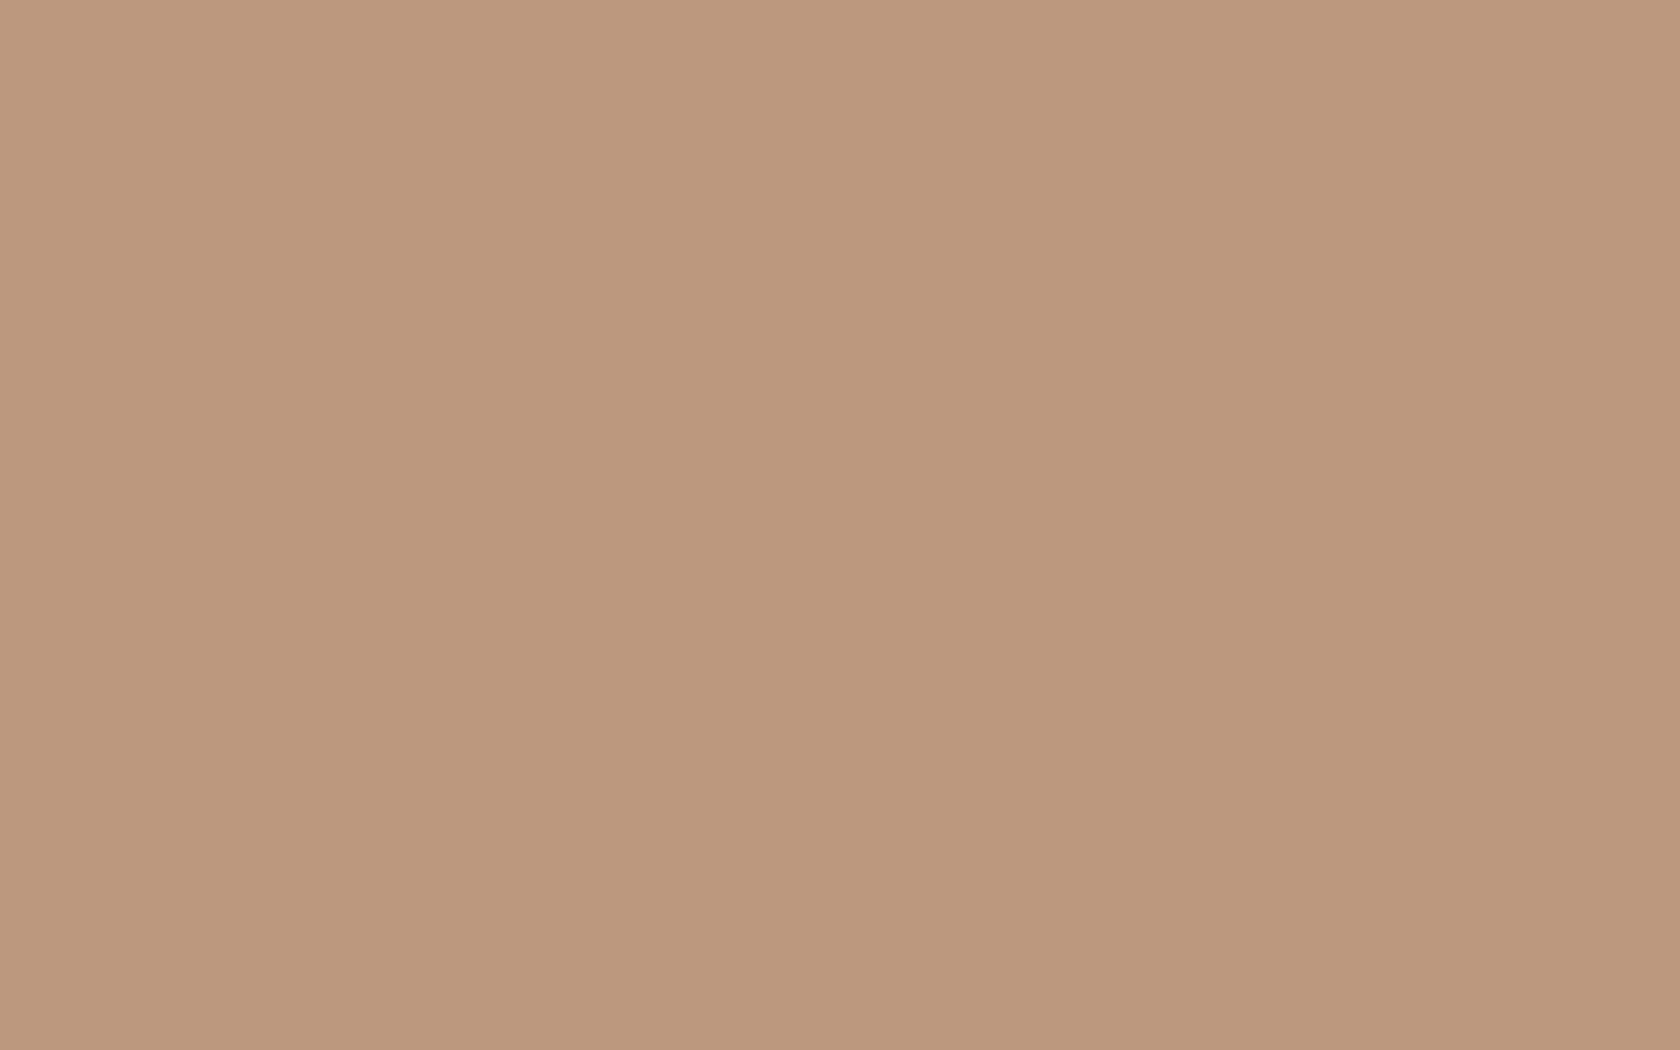 1680x1050 Pale Taupe Solid Color Background